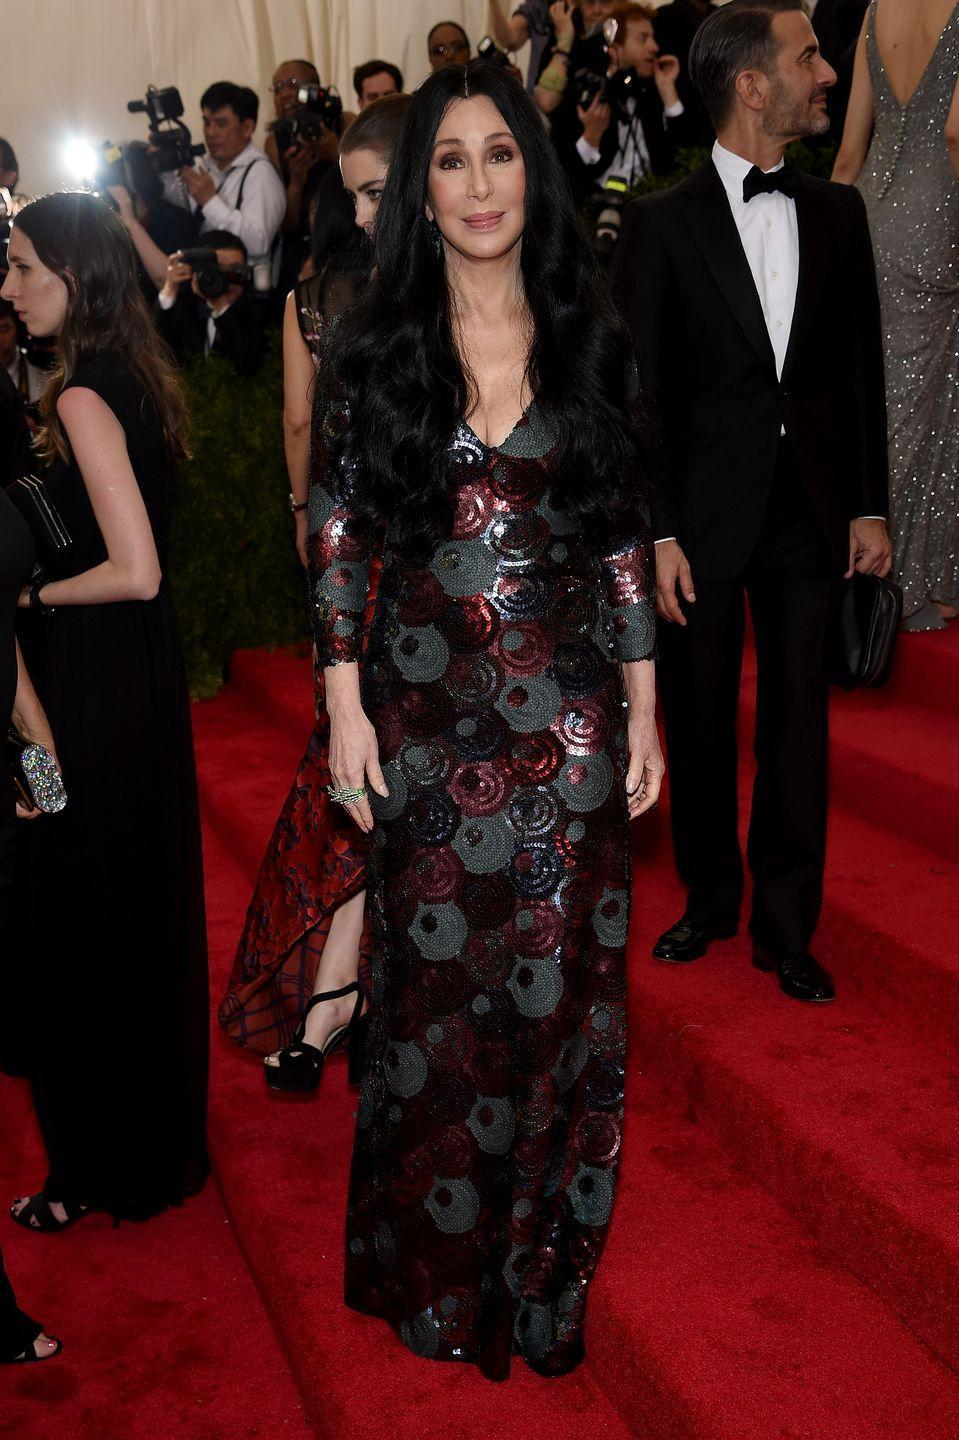 <p>For her first Met Gala appearance in nearly 20 years, Cher attended with Marc Jacobs in a sparkling full-length gown by the designer. </p>